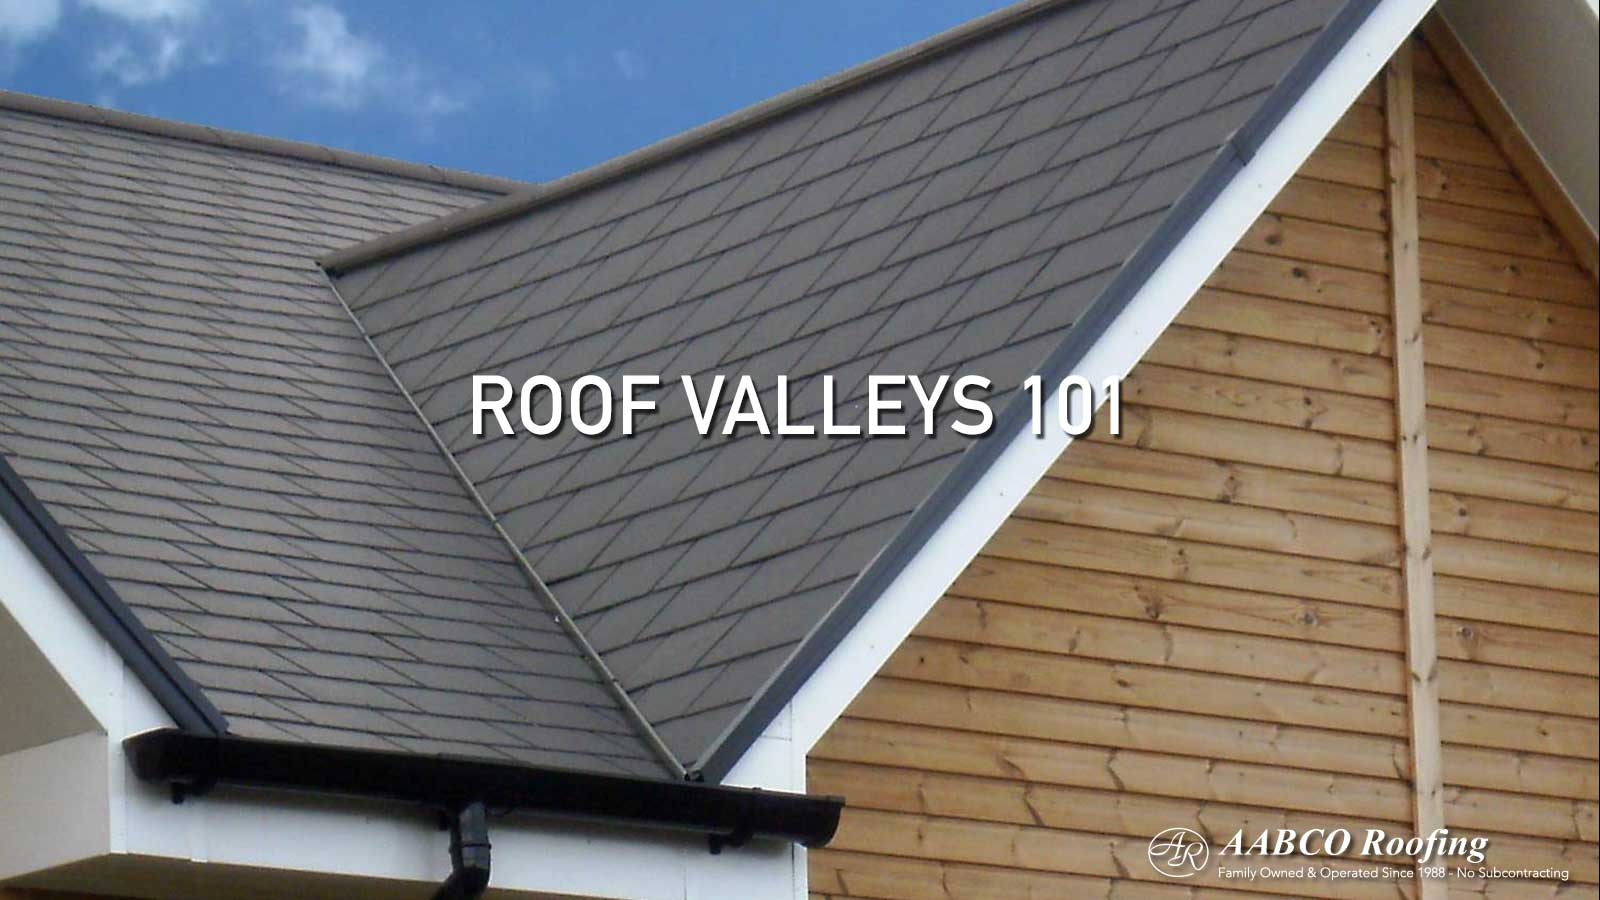 Roof Valleys 101